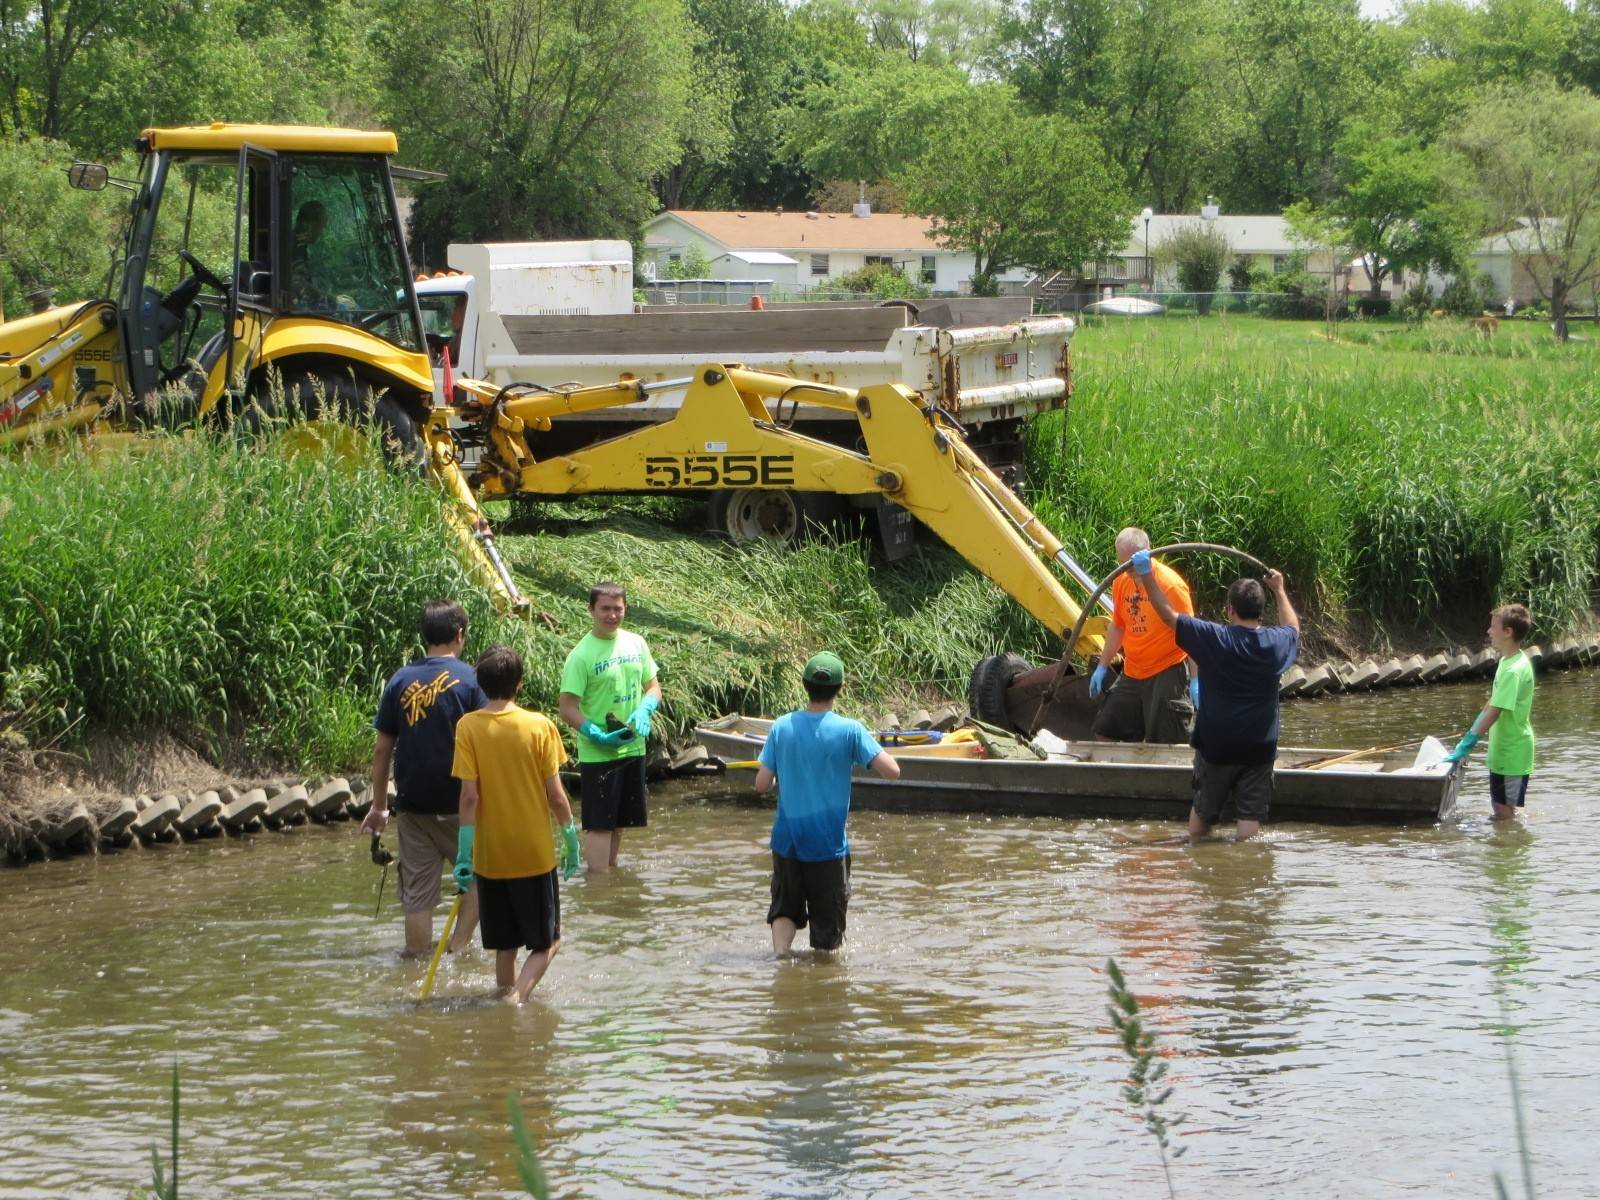 Volunteers from Boy Scout Troop 95 help clean up Salt Creek in Elk Grove Village last weekend. Organizers say volunteers removed some 72 cubic yards of garbage during the 20th annual cleanup effort.